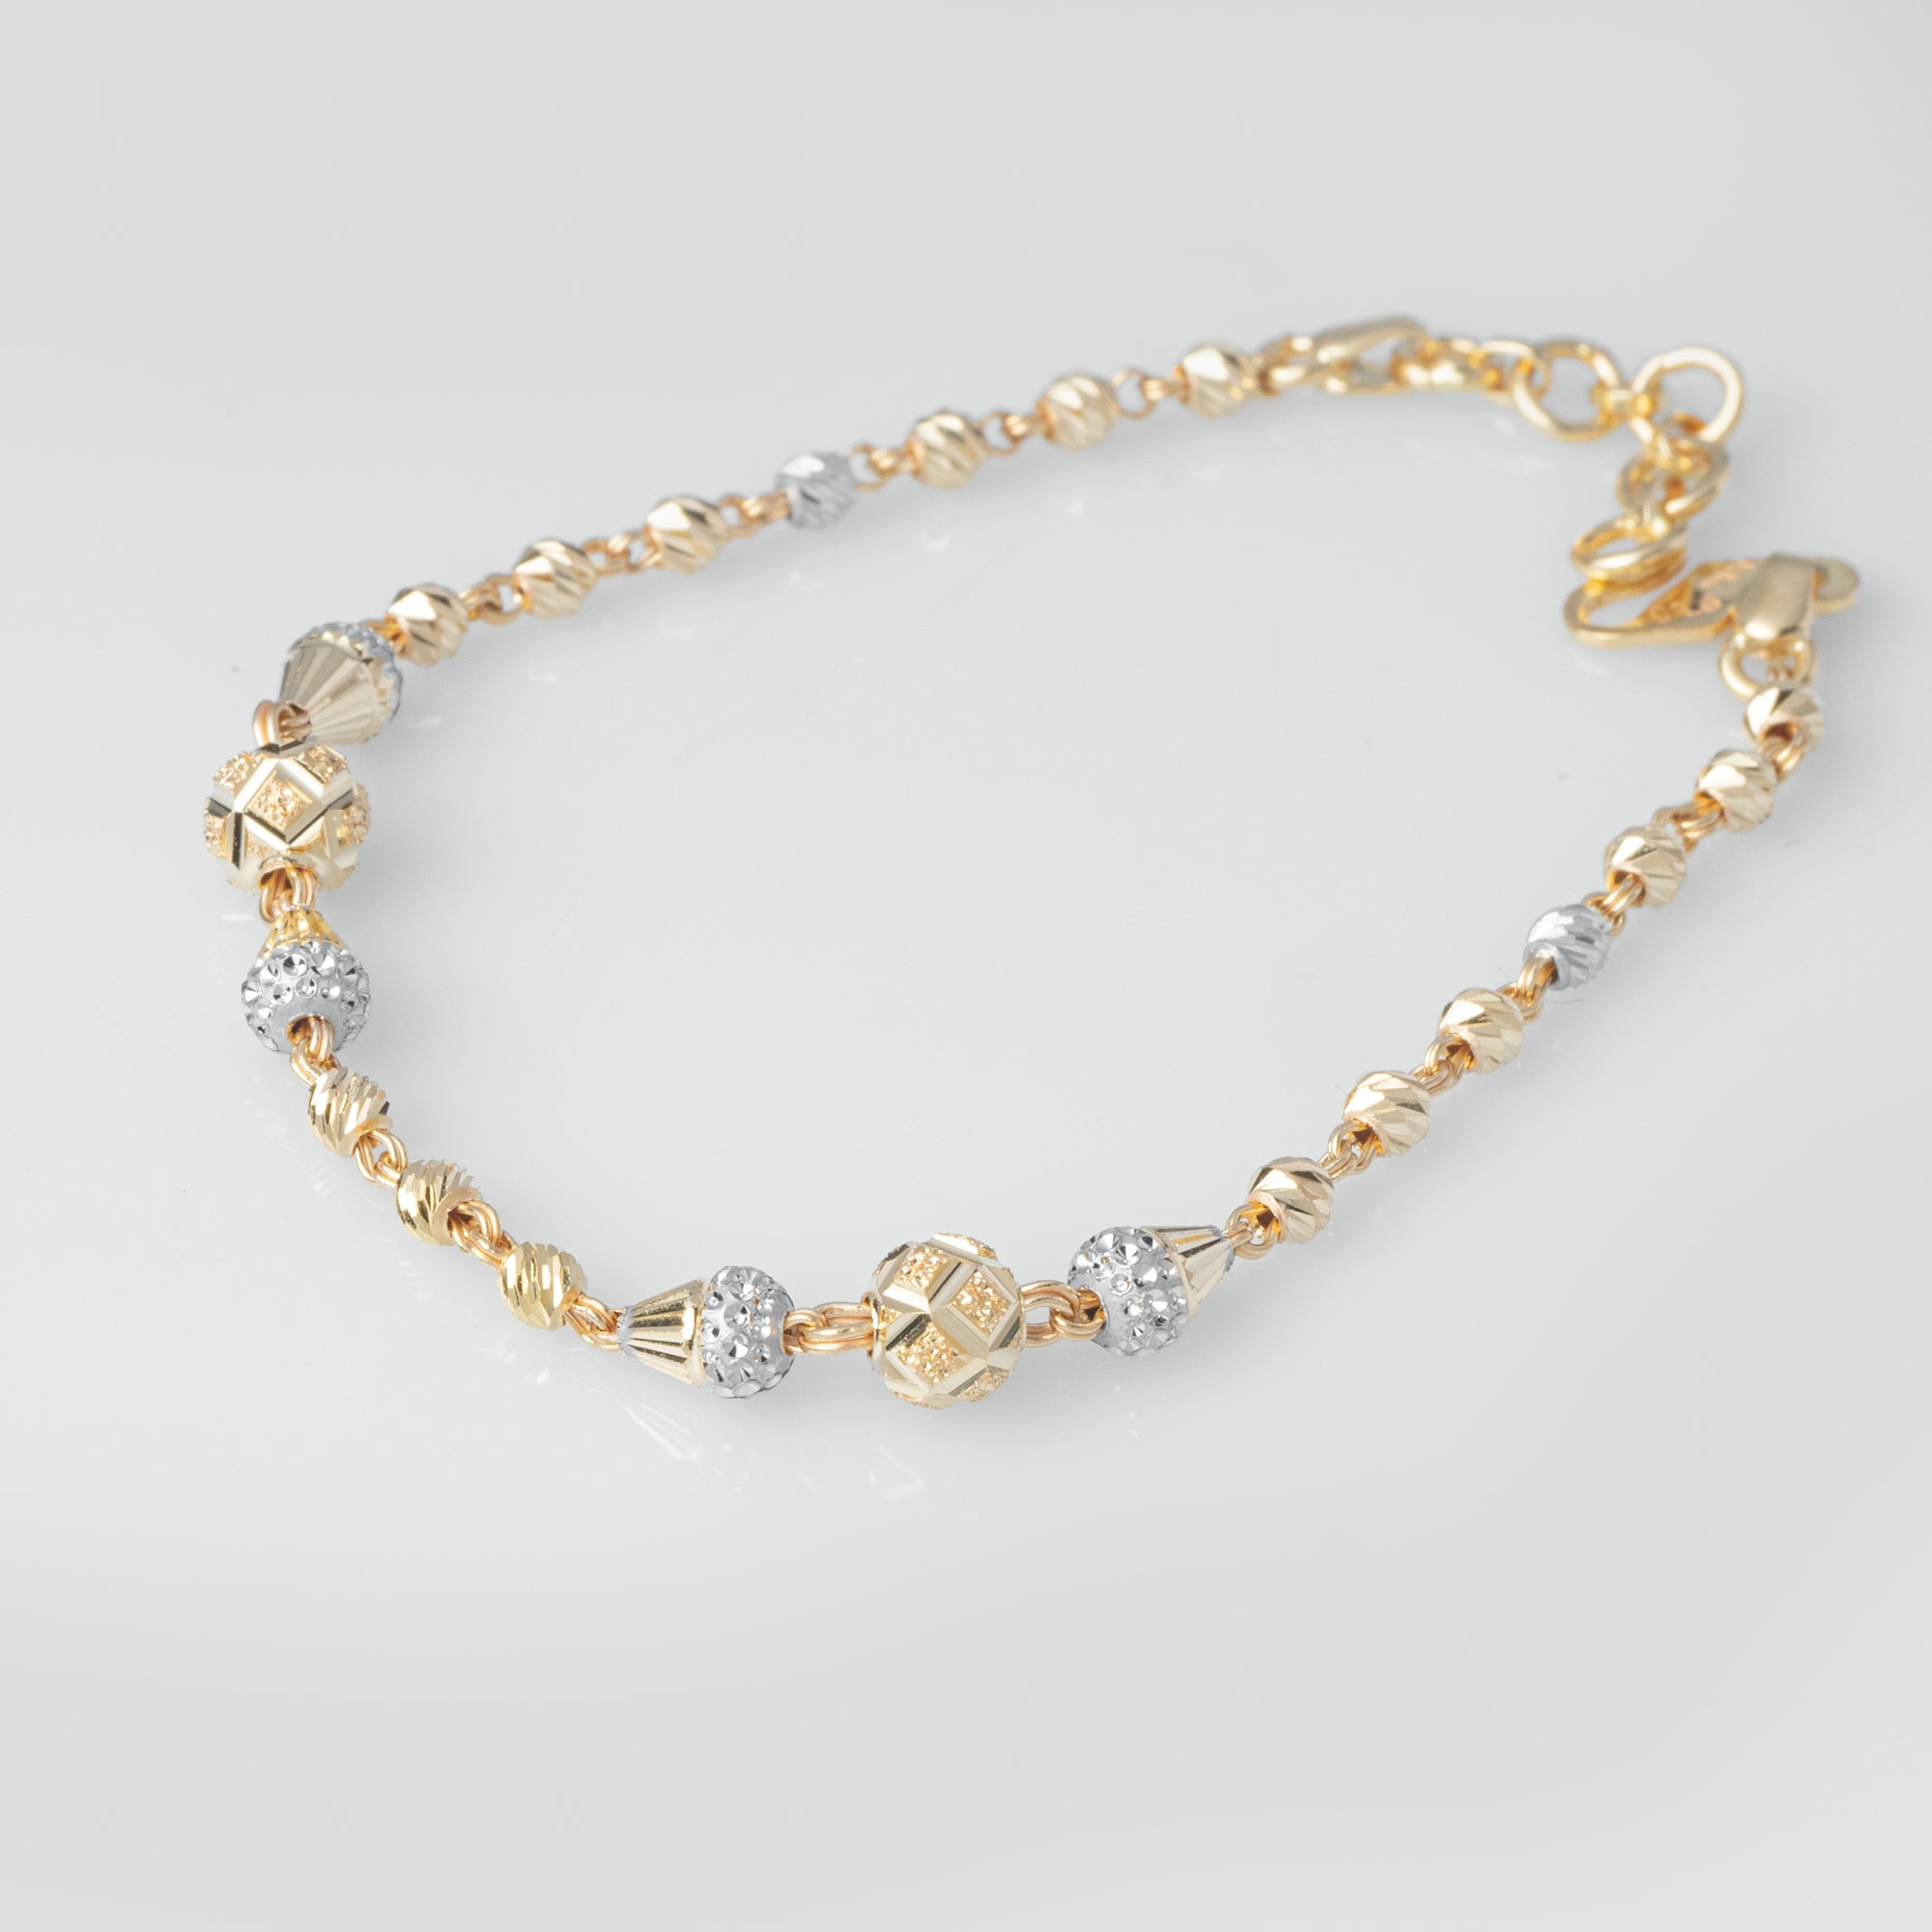 22ct Gold Diamond Cut & Rhodium Design Bracelet (4.3g) LBR-8019